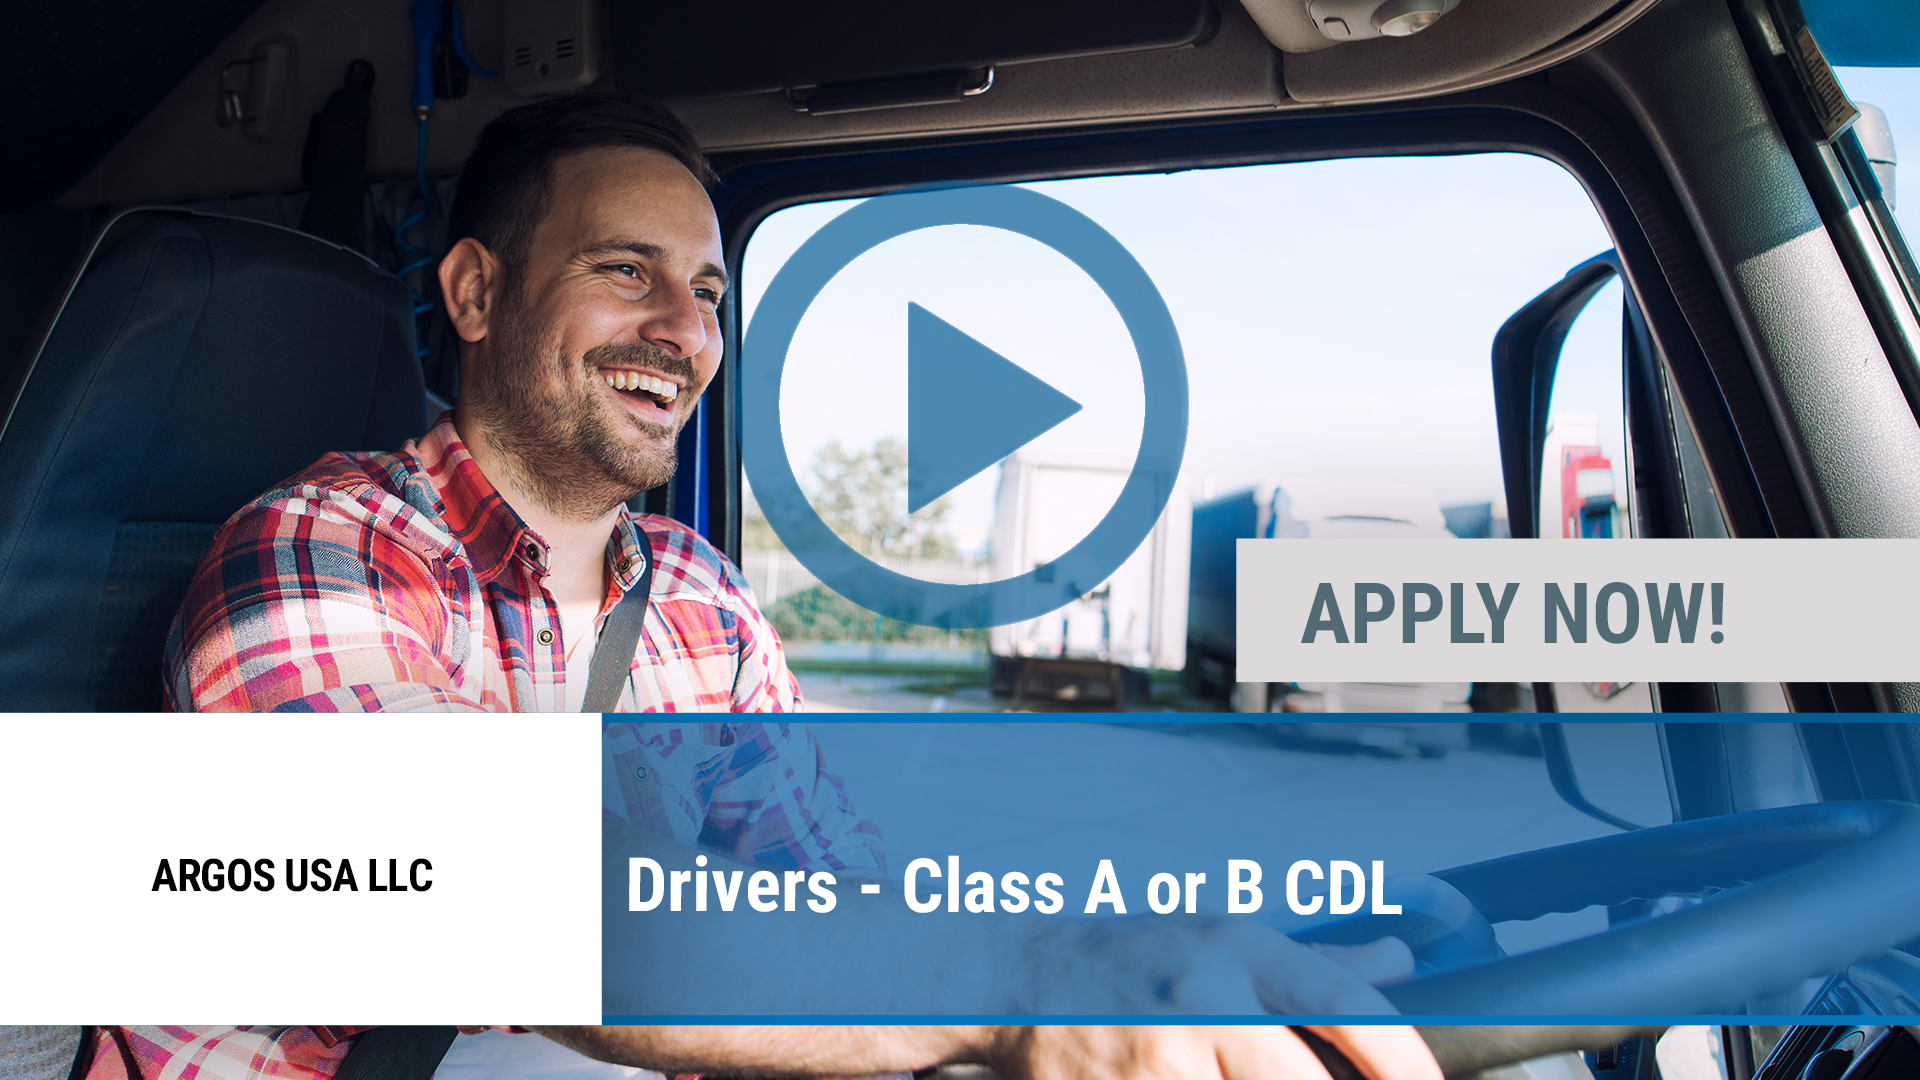 Watch our careers video for available job opening Drivers - Class A or B CDL in Richardson, TX